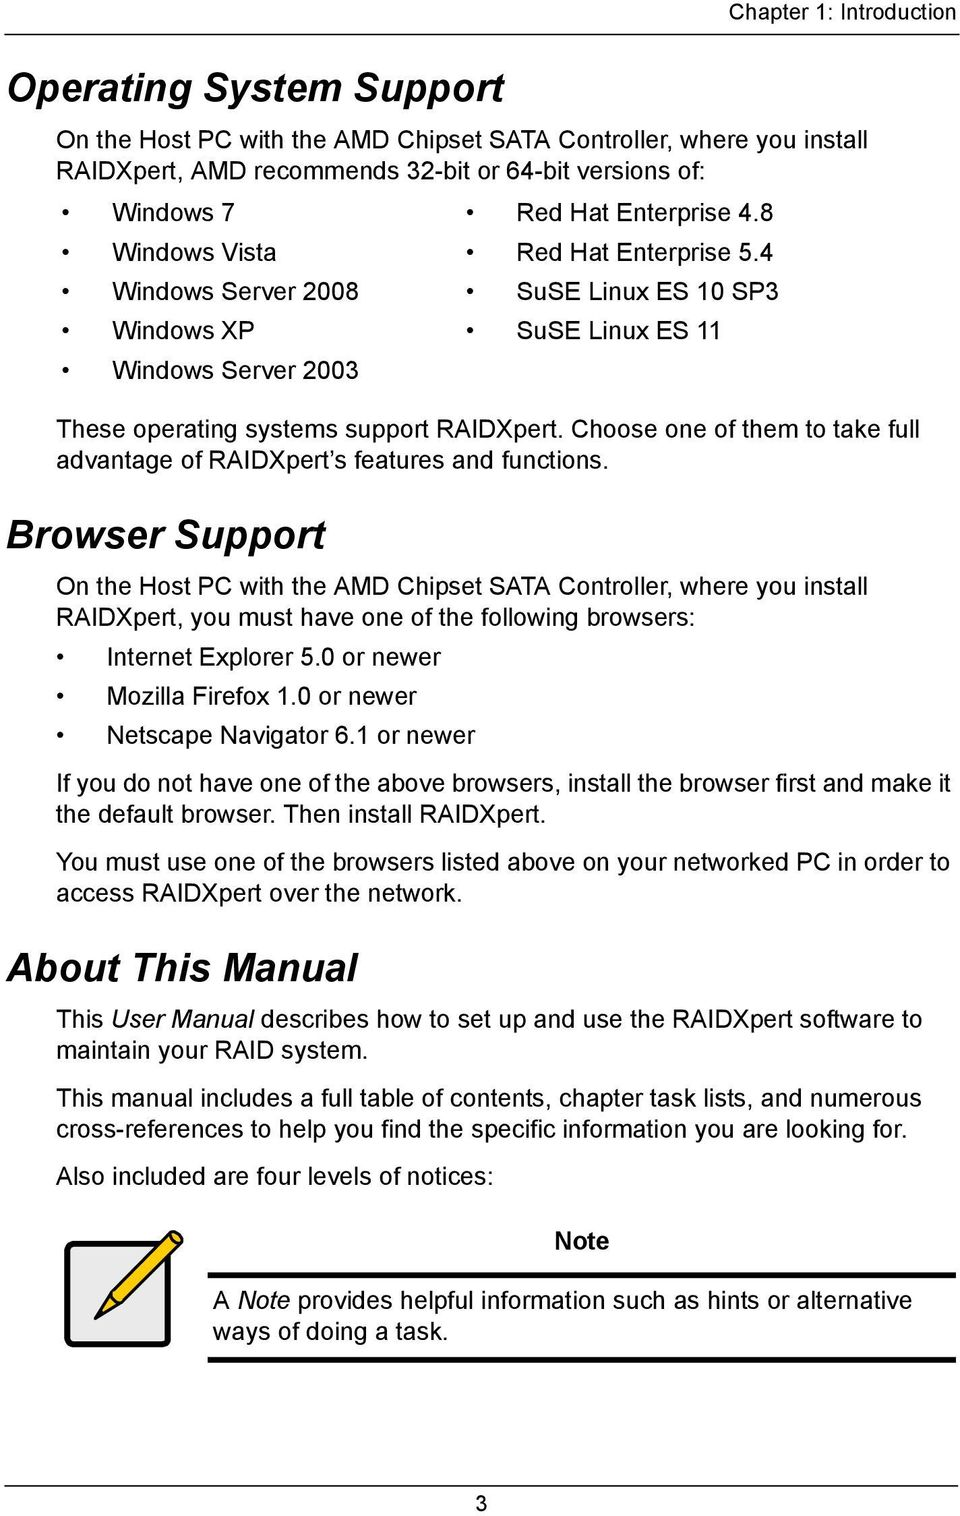 Browser Support On the Host PC with the AMD Chipset SATA Controller, where you install RAIDXpert, you must have one of the following browsers: Internet Explorer 5.0 or newer Mozilla Firefox 1.